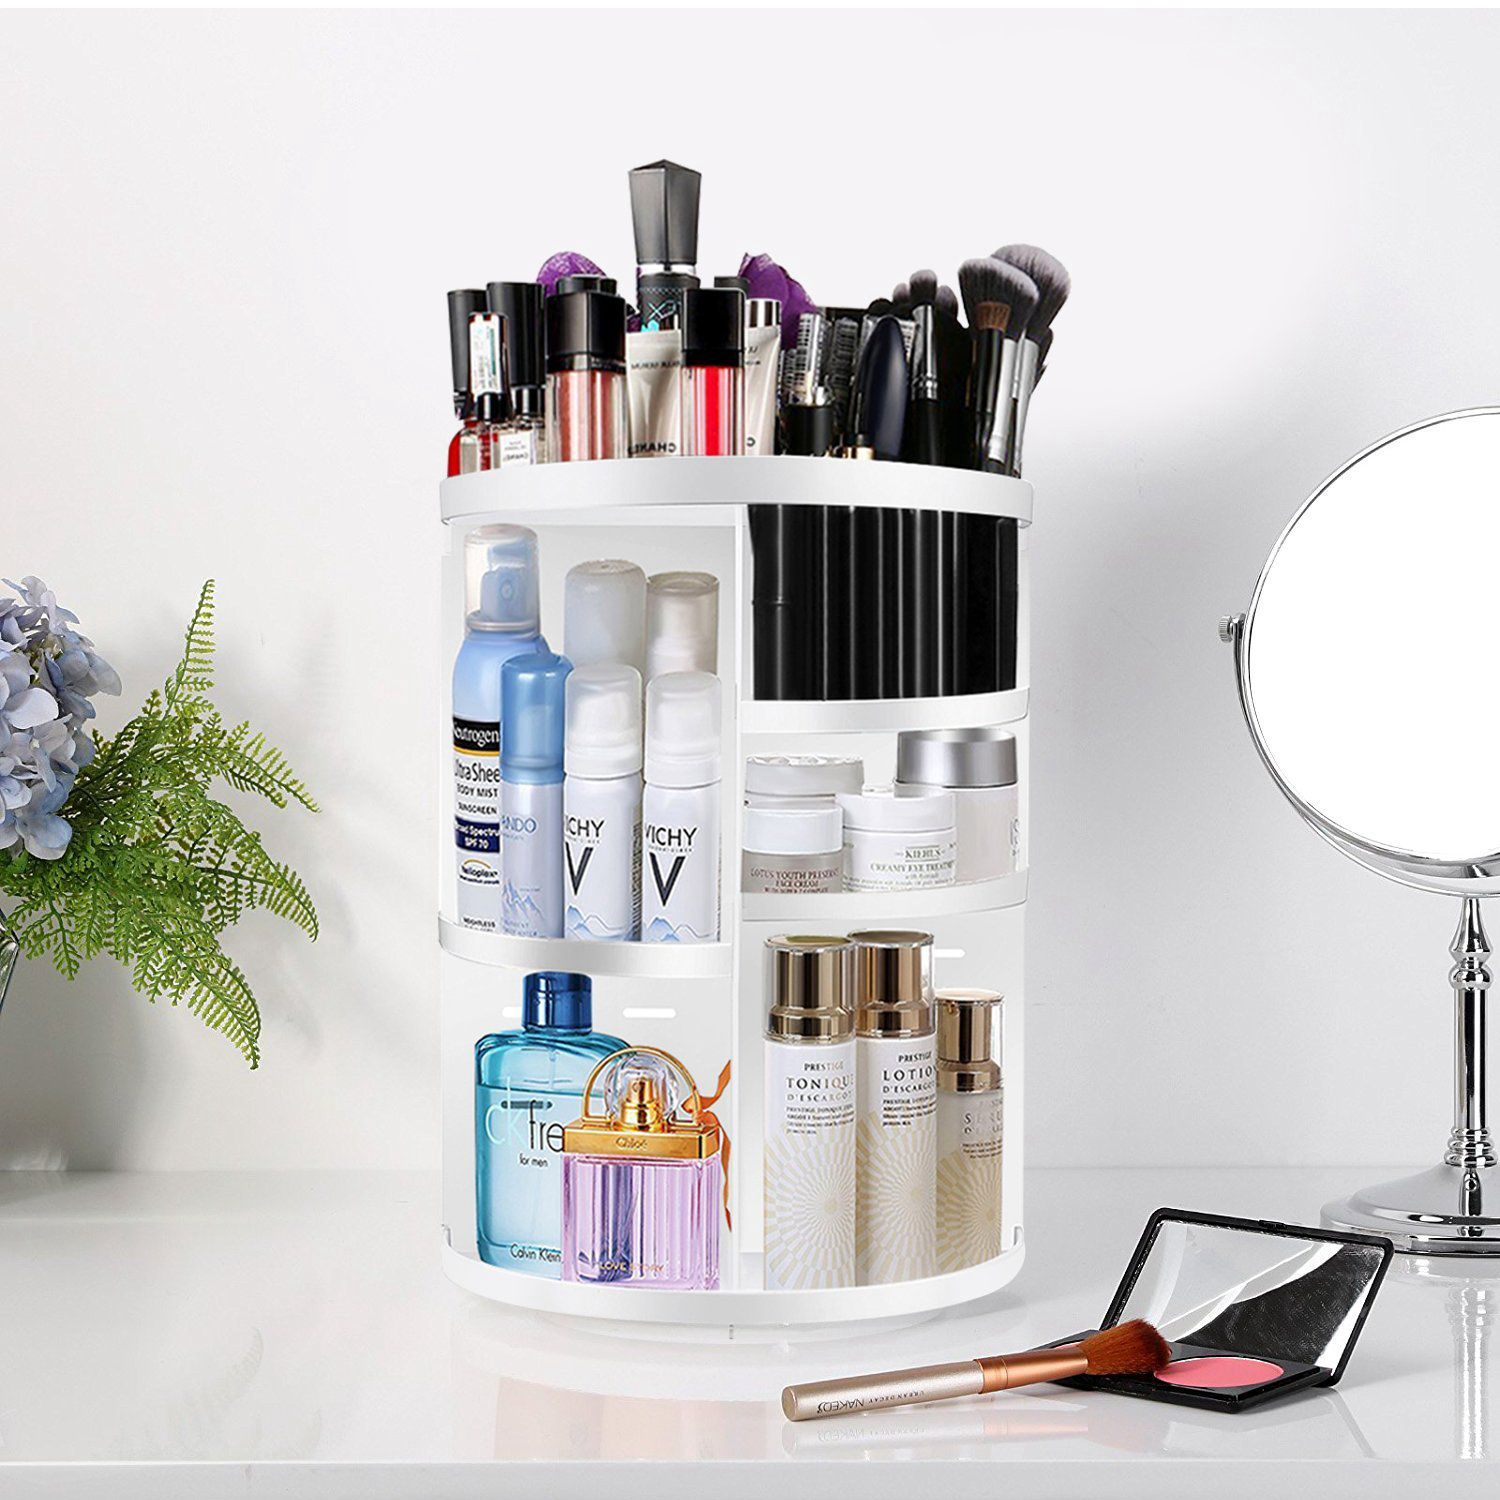 360 Degree Rotating MakeUp Organizers and Storage Box Gift For Women Adjustable Multi-Function Cosmetic Case Brush Holder Stan